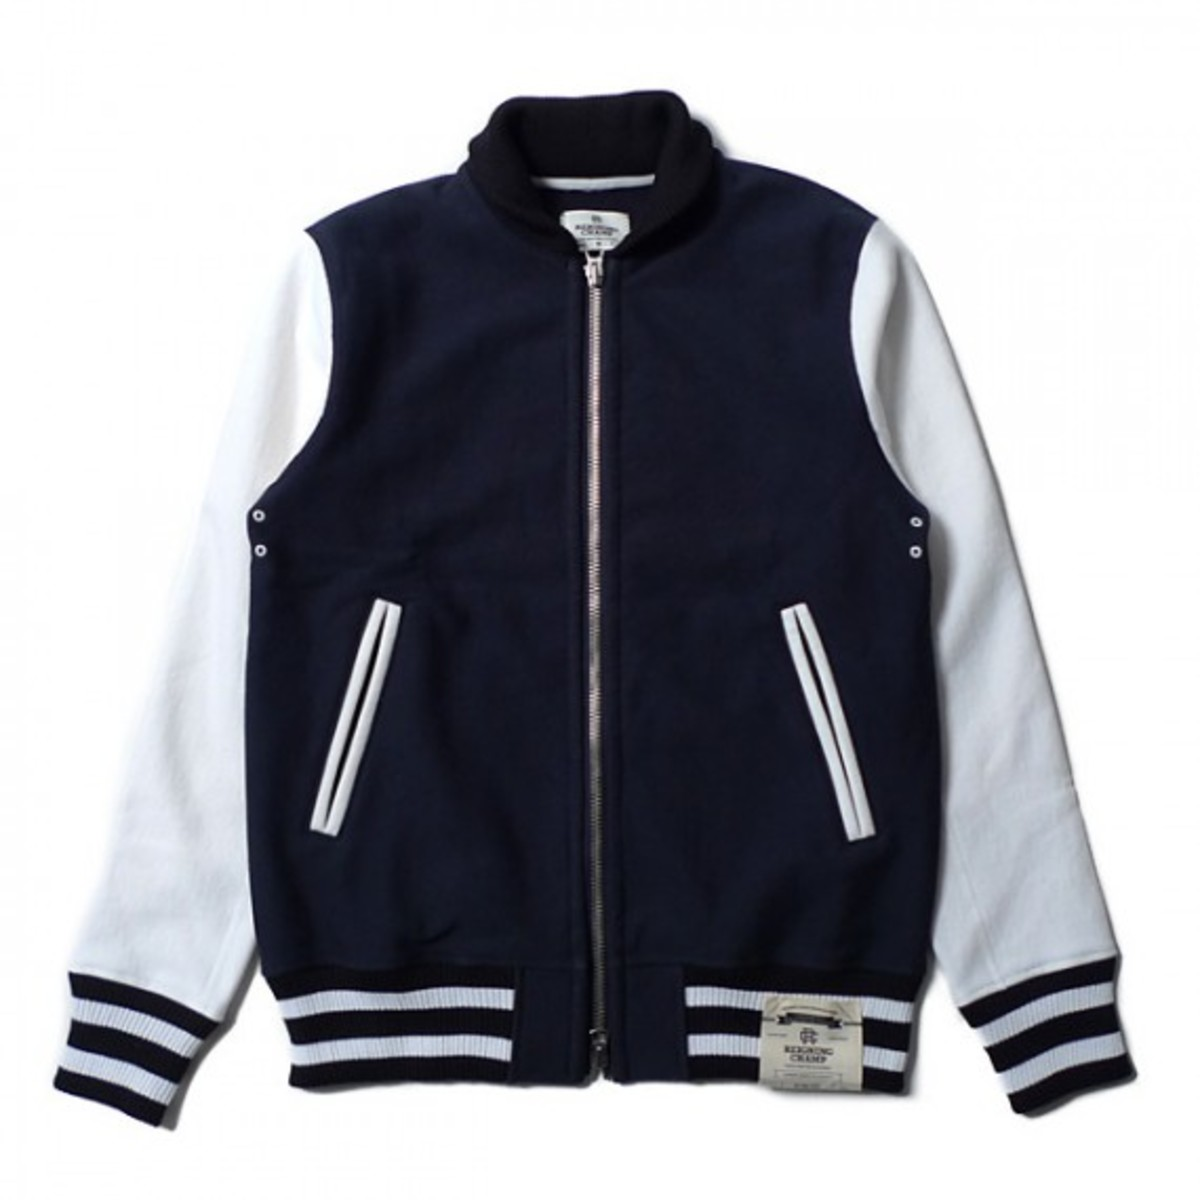 reigning-champ-fall-winter-2010-collection-delivery-7